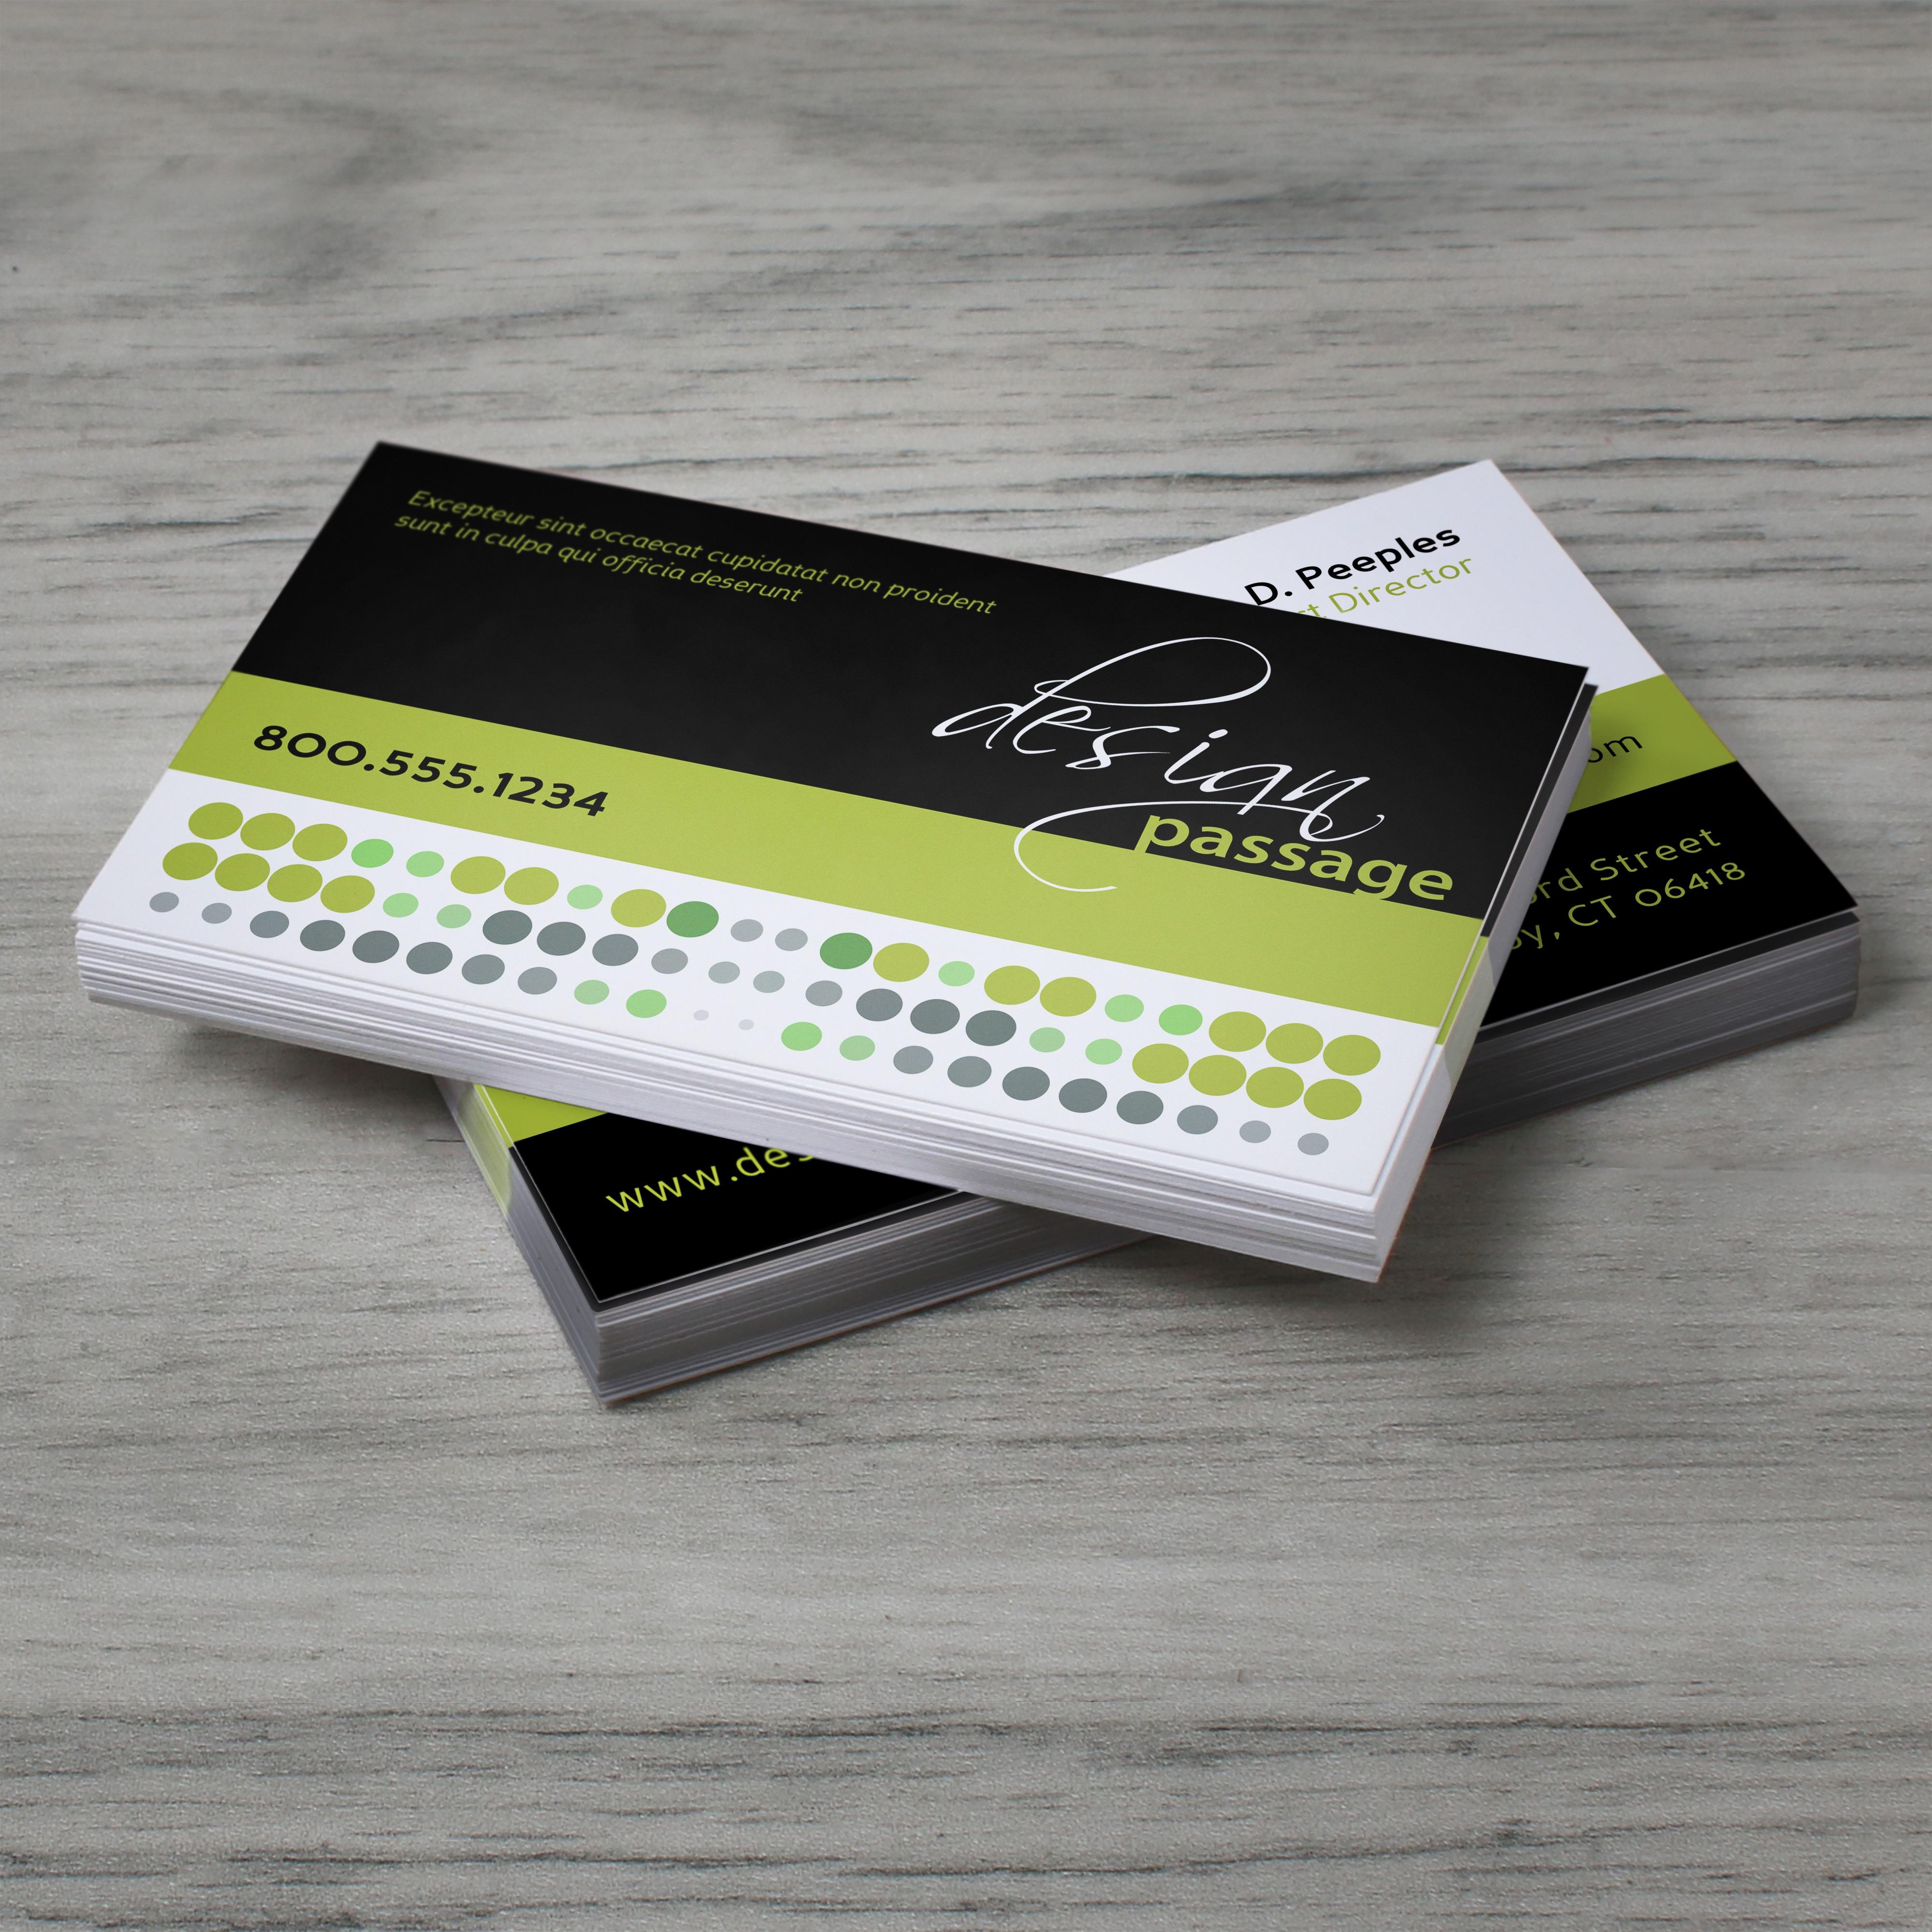 standard_business_cards_3 standard business cards standard business card printing - Business Card Printing Near Me